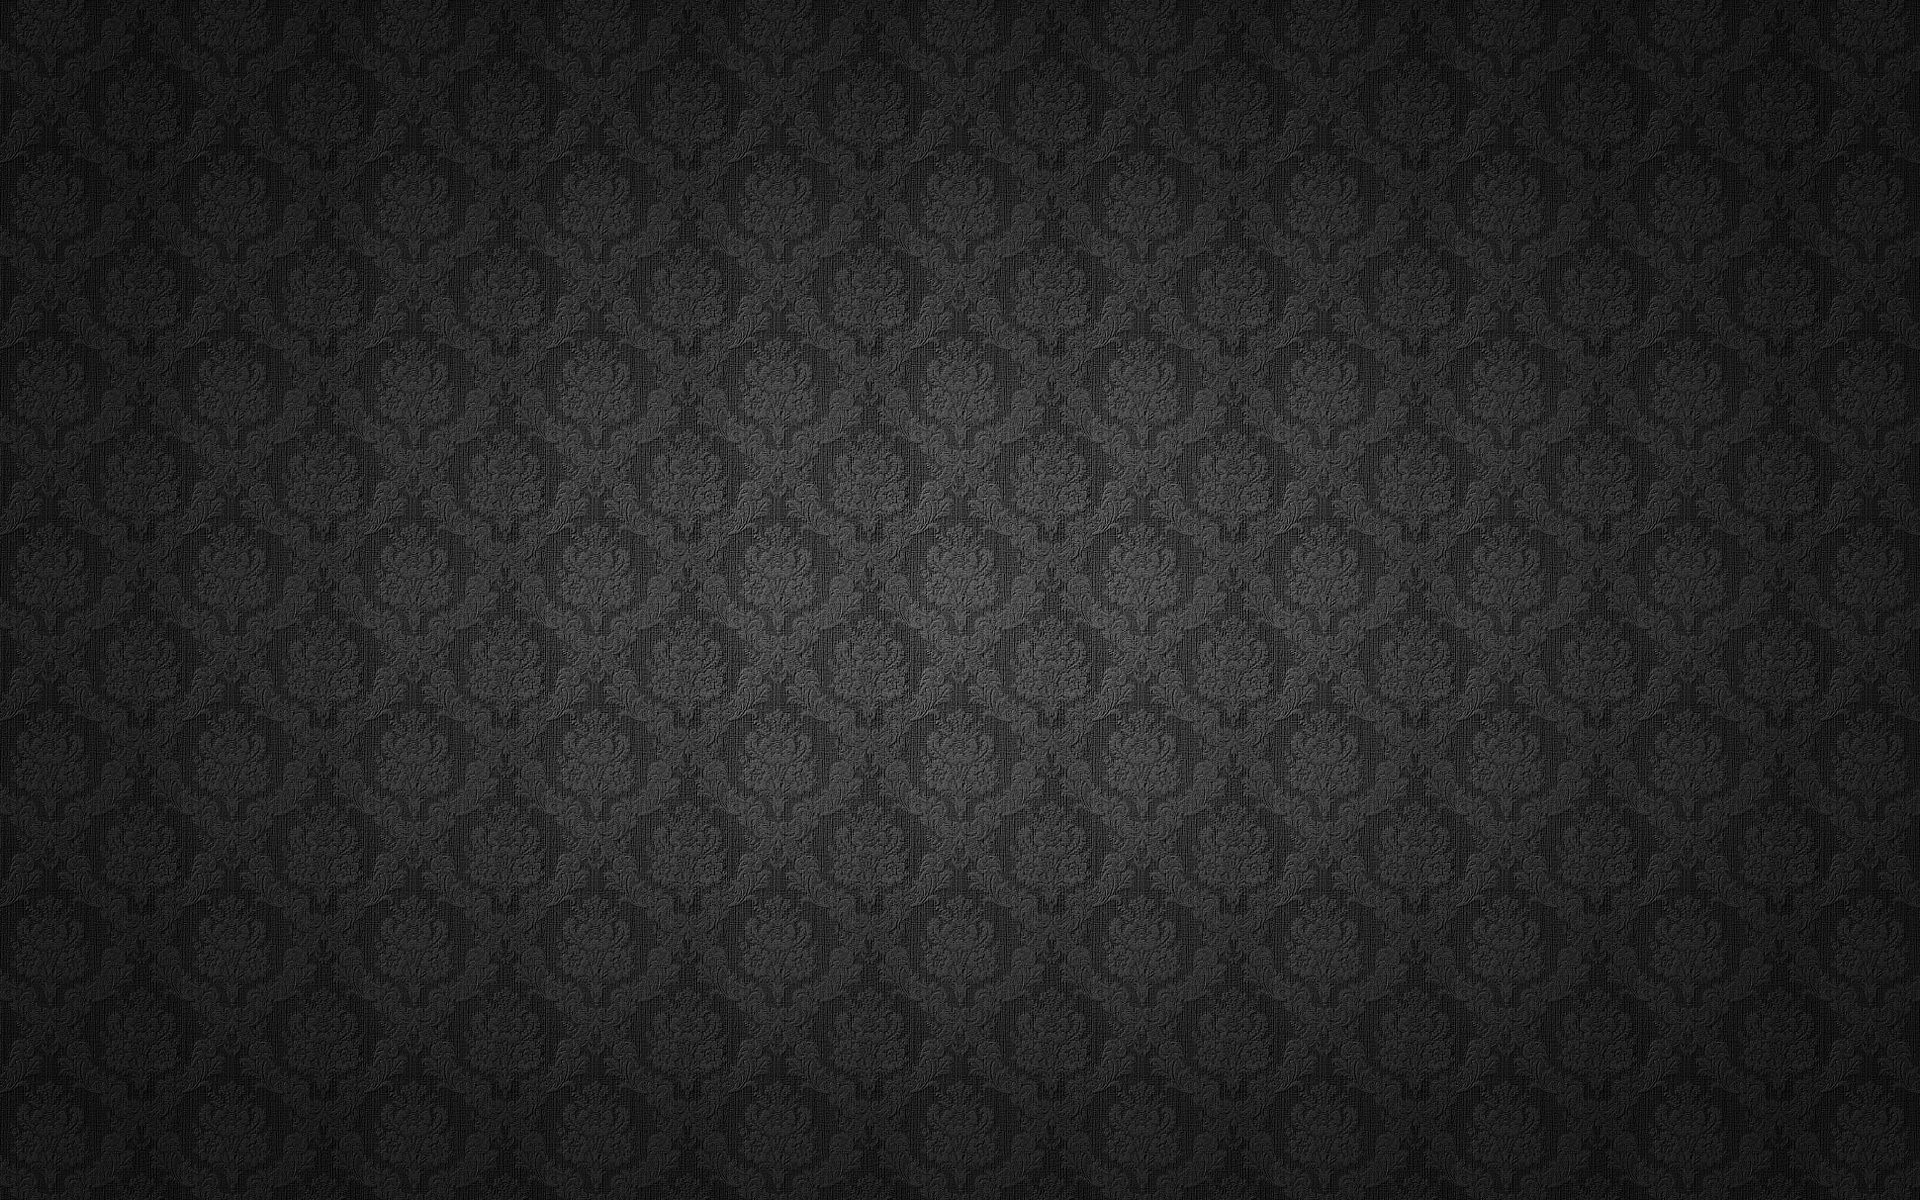 [43+] Black Vintage Wallpaper on WallpaperSafari